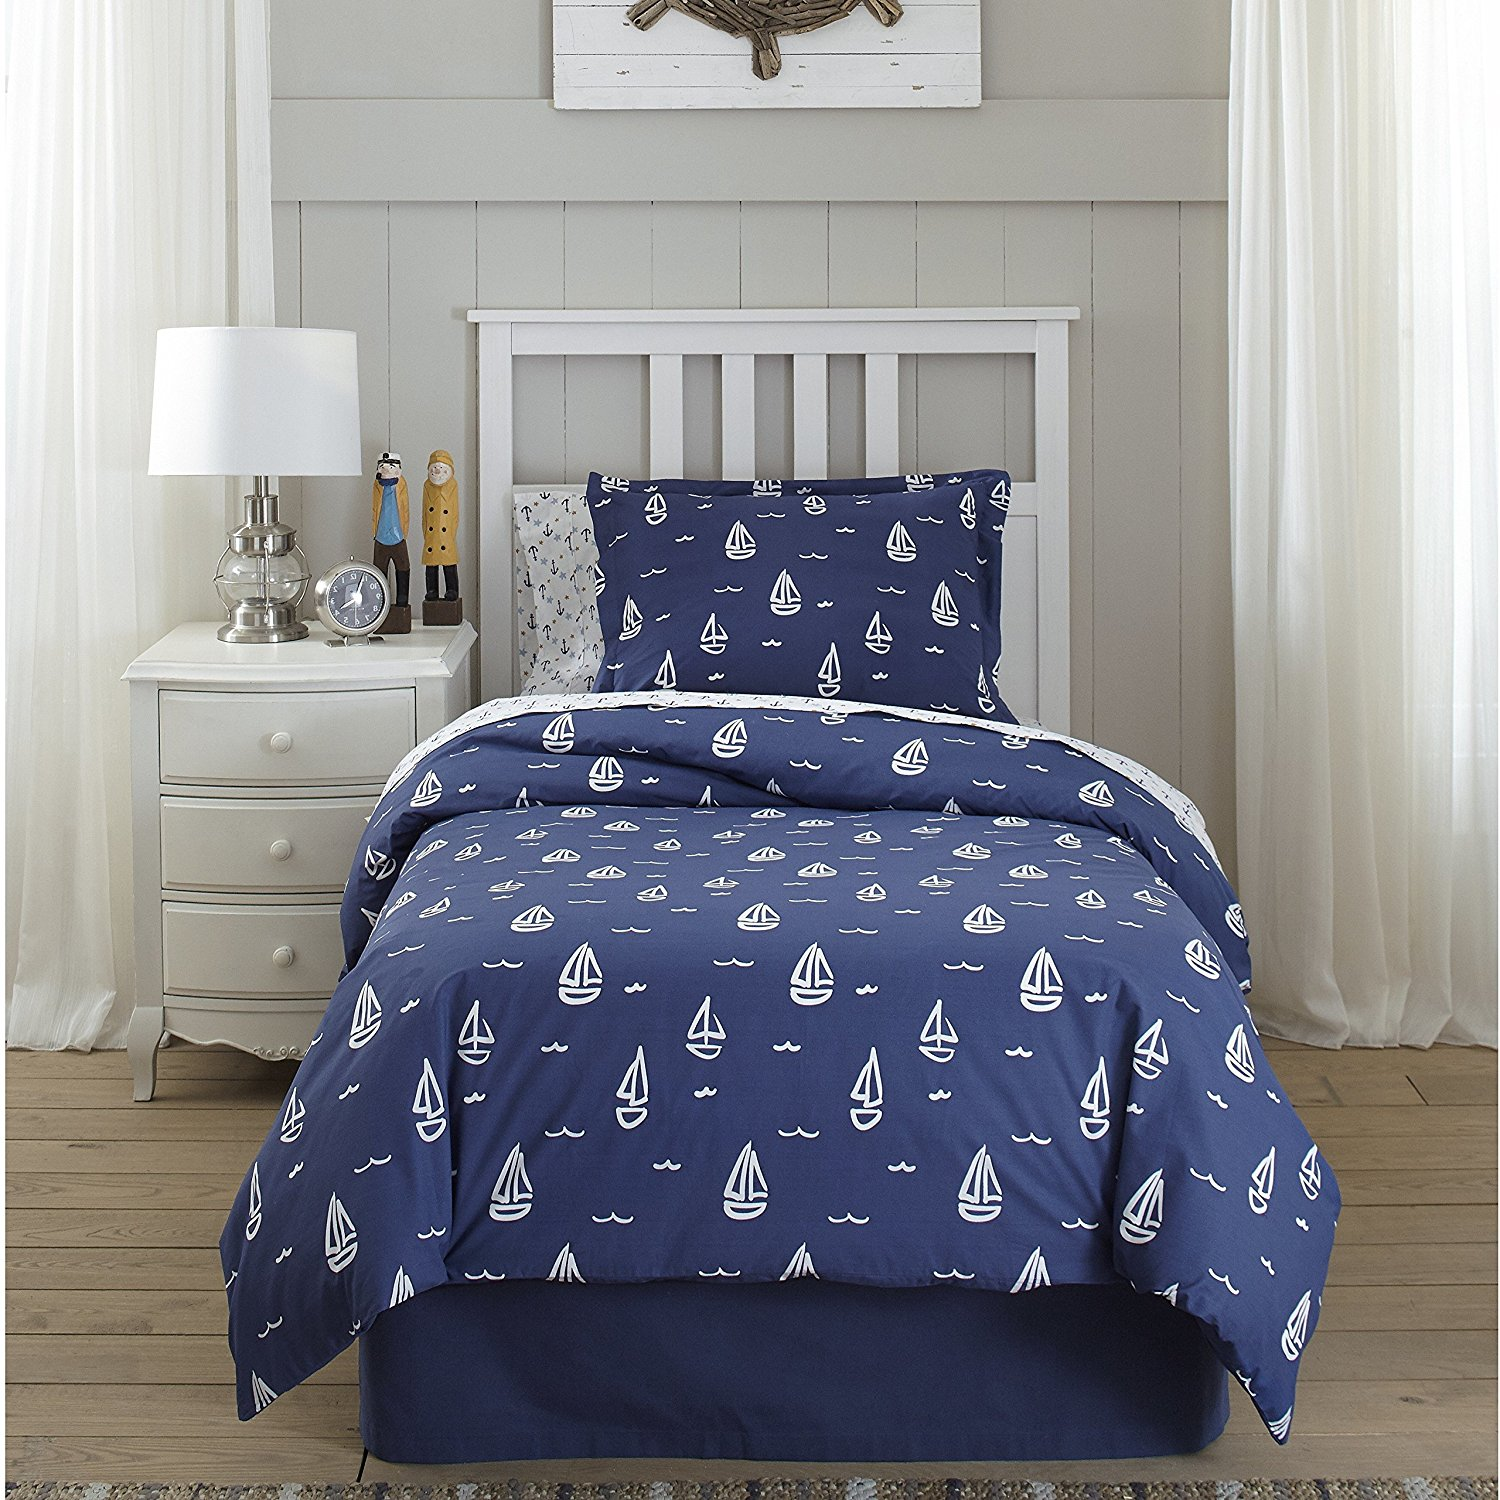 CA 4 Piece Boys Navy Blue White Nautical Comforter Set Queen, Light Blue Geometric Anchors Galore Teen Themed Reversible Kids Bedding for Bedroom Fancy Casual Colorful, Cotton